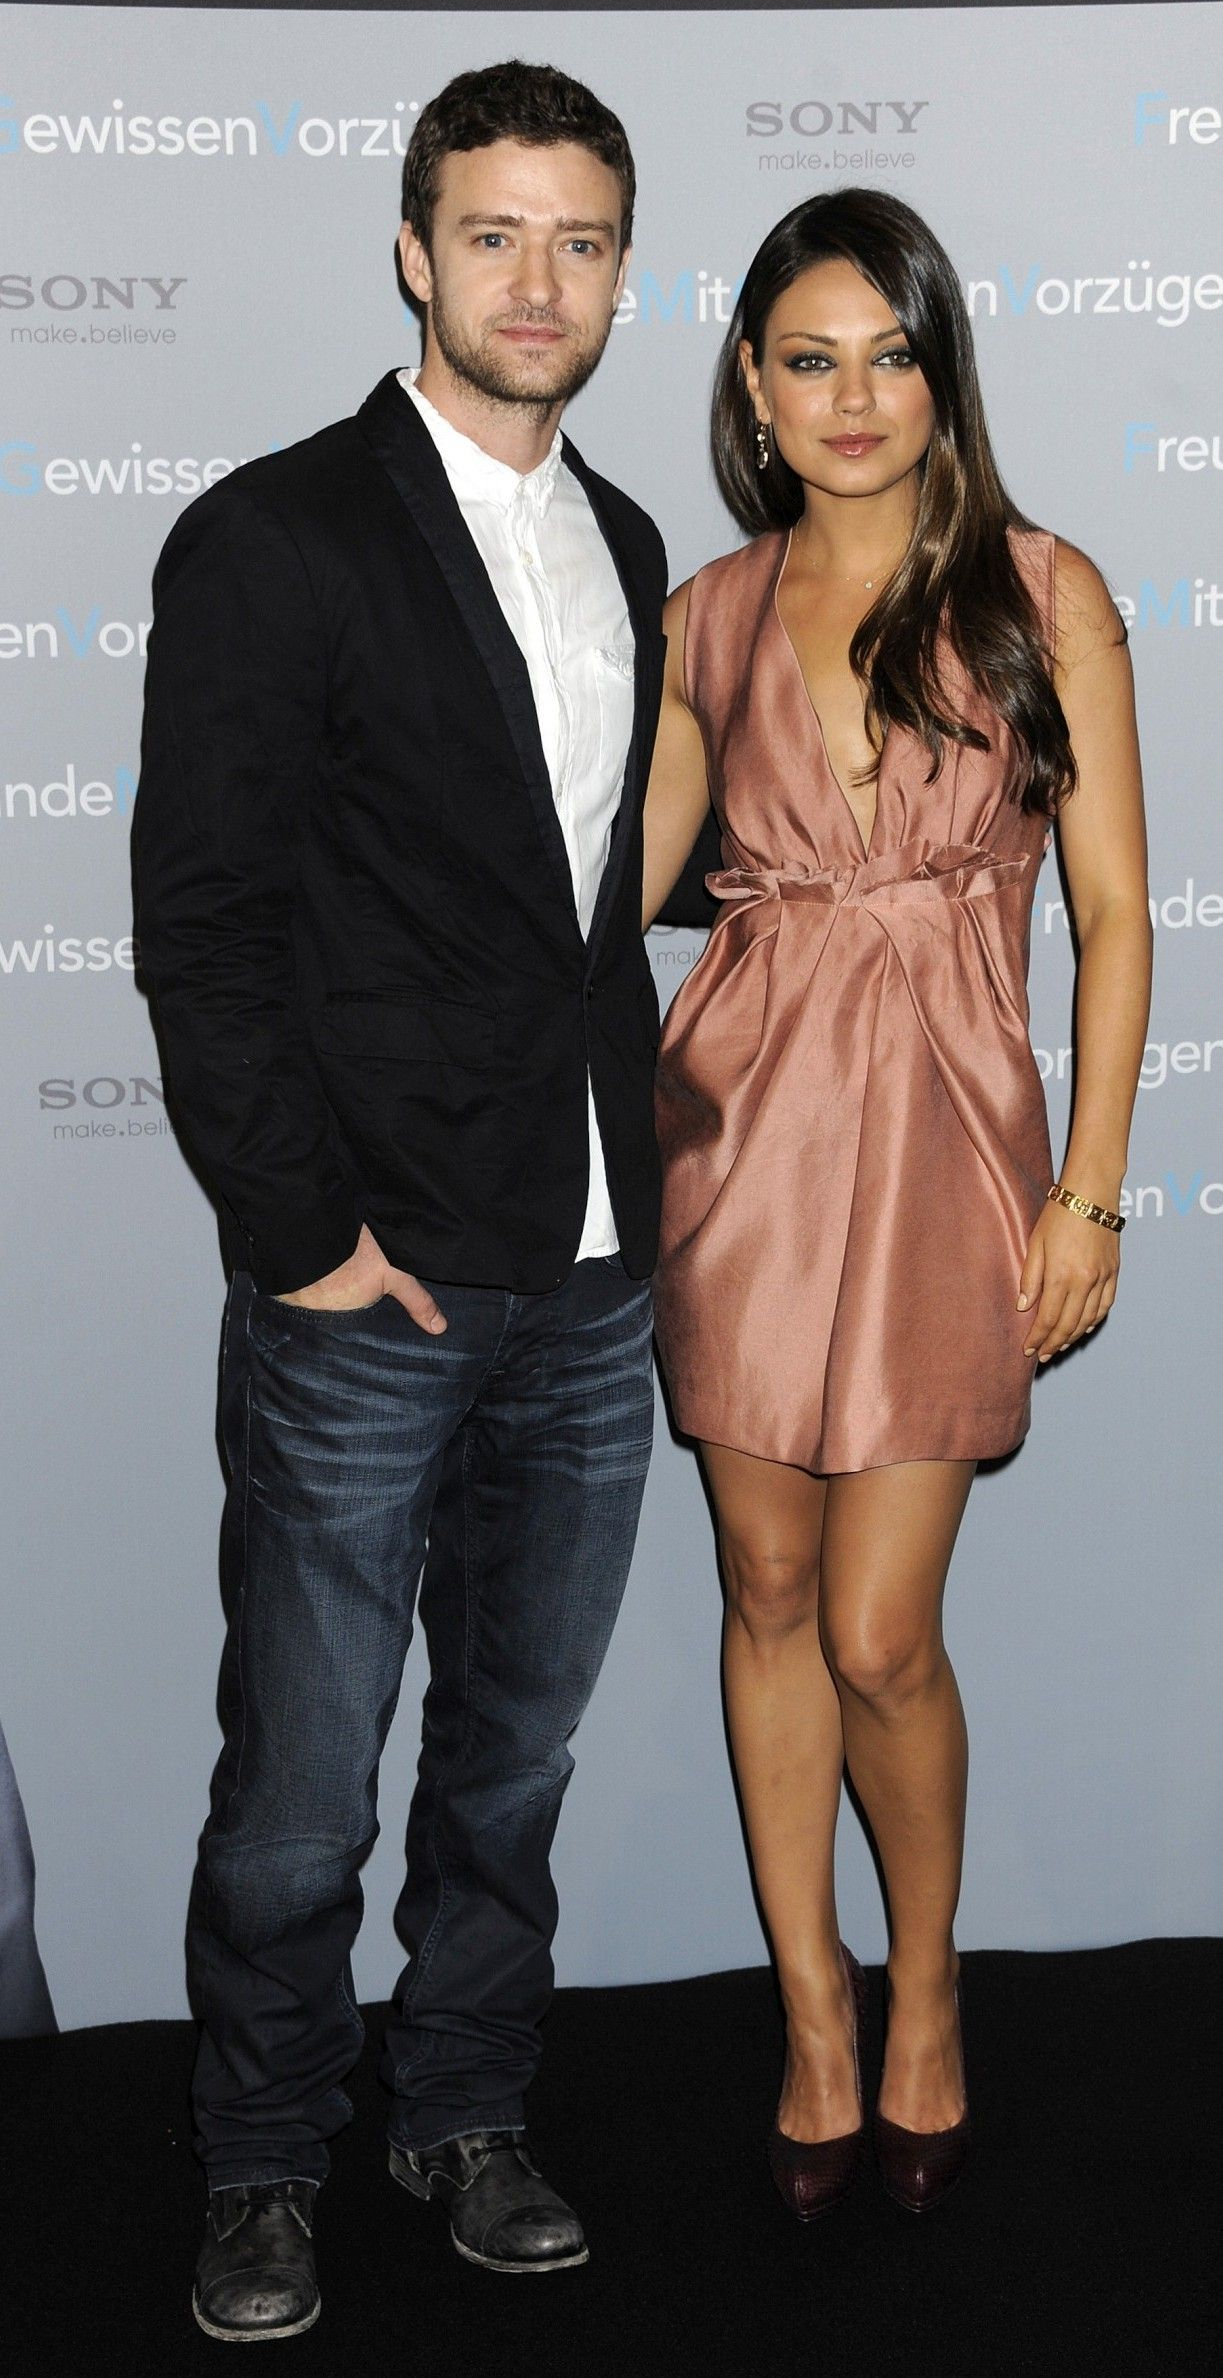 -Friends-With-Benefits-Photocall-In-Berlin-mila-kunis-24161575-1600-2400